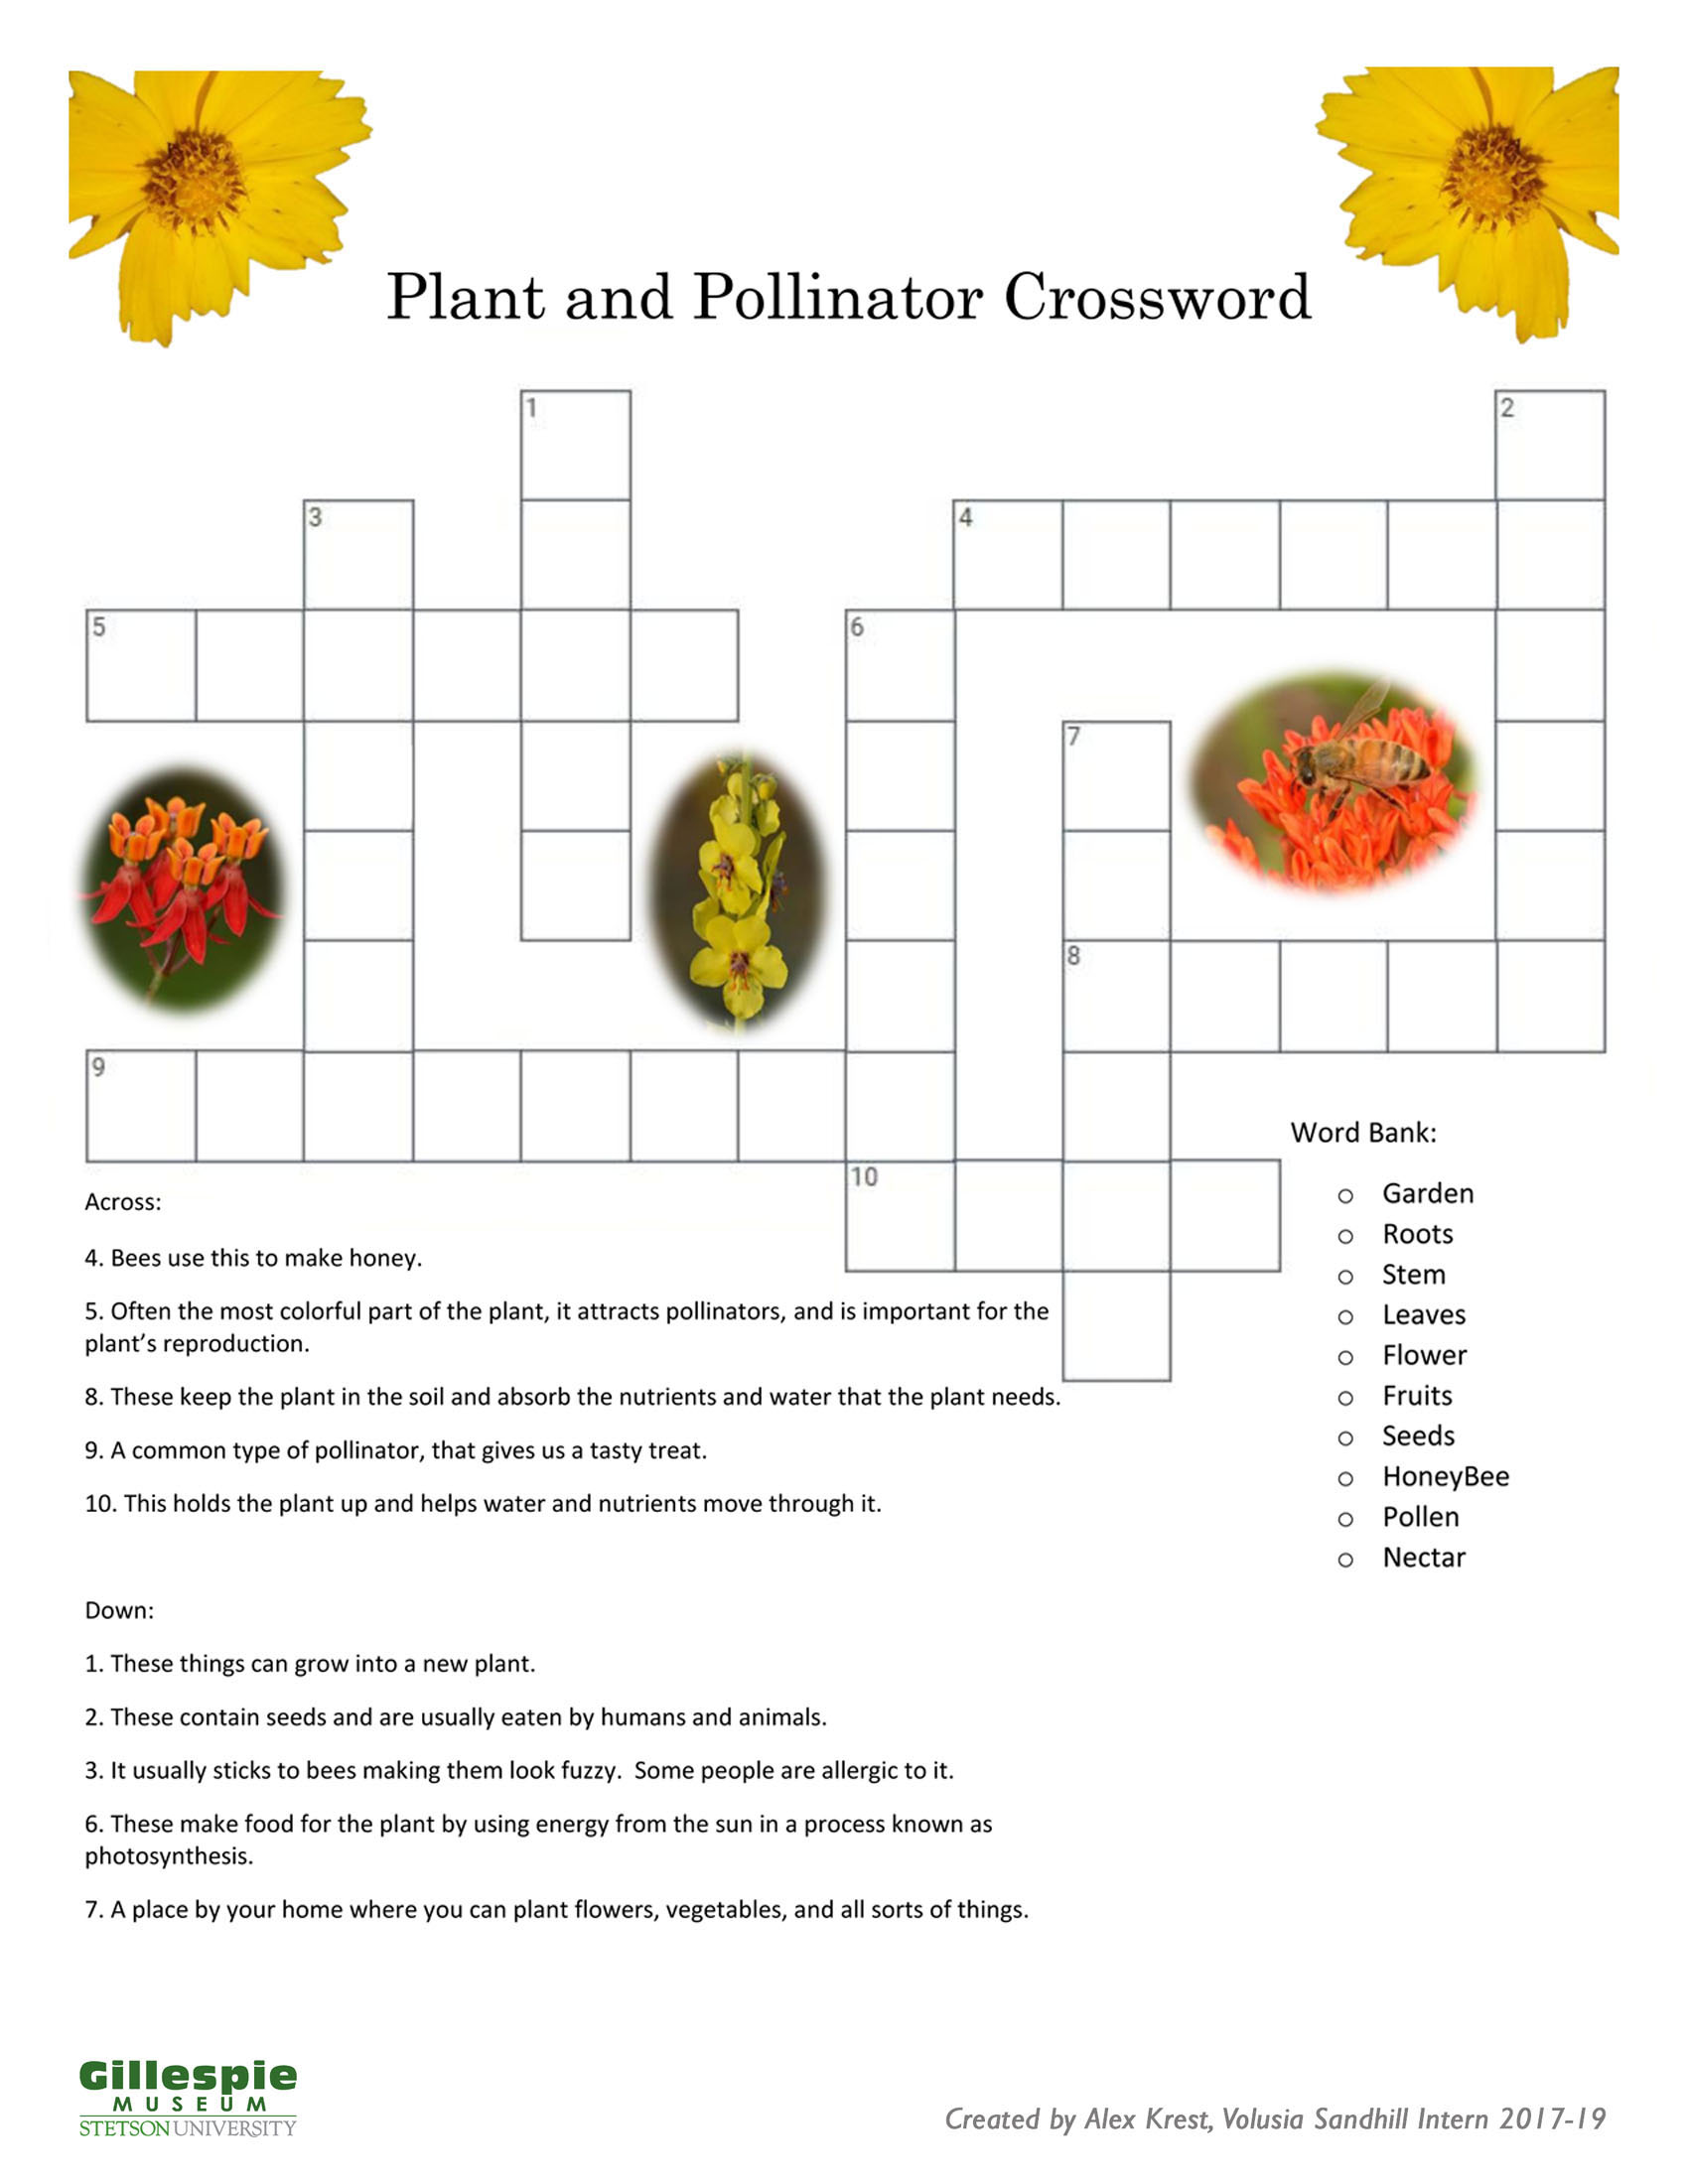 pollination crossword